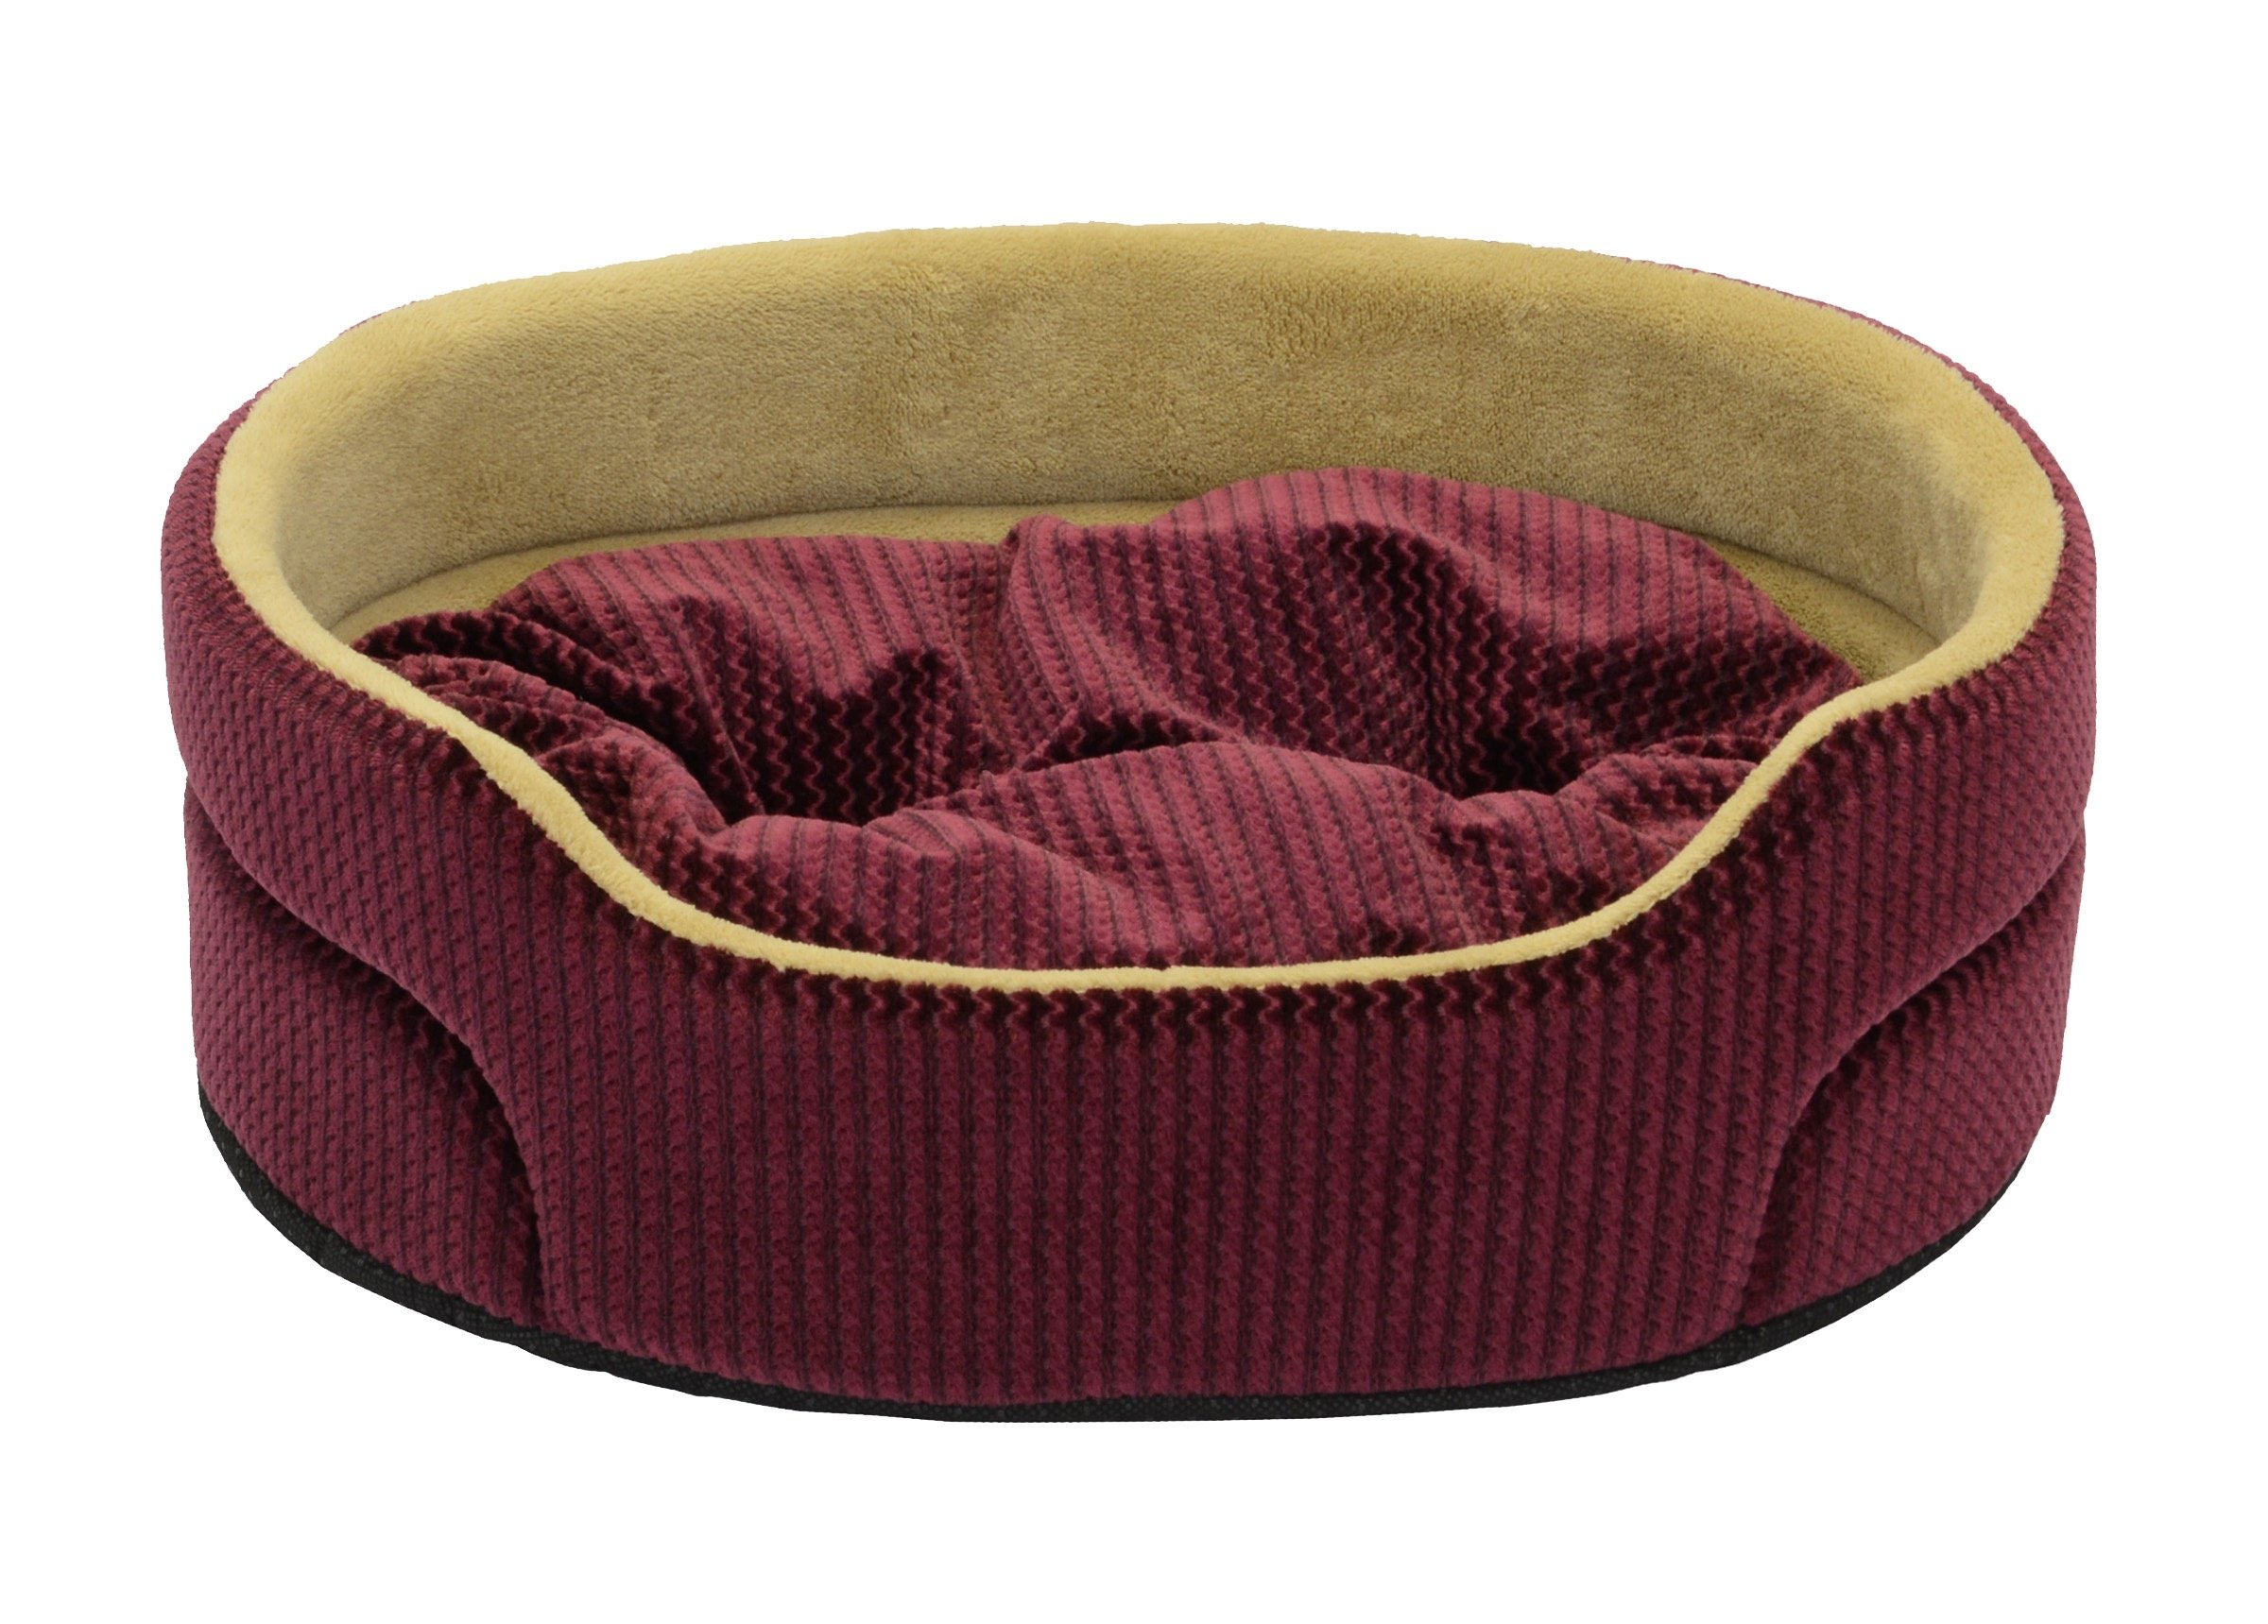 Dallas Manutacturing Co. Textured 19'' Oval Pet Bed, Burgundy